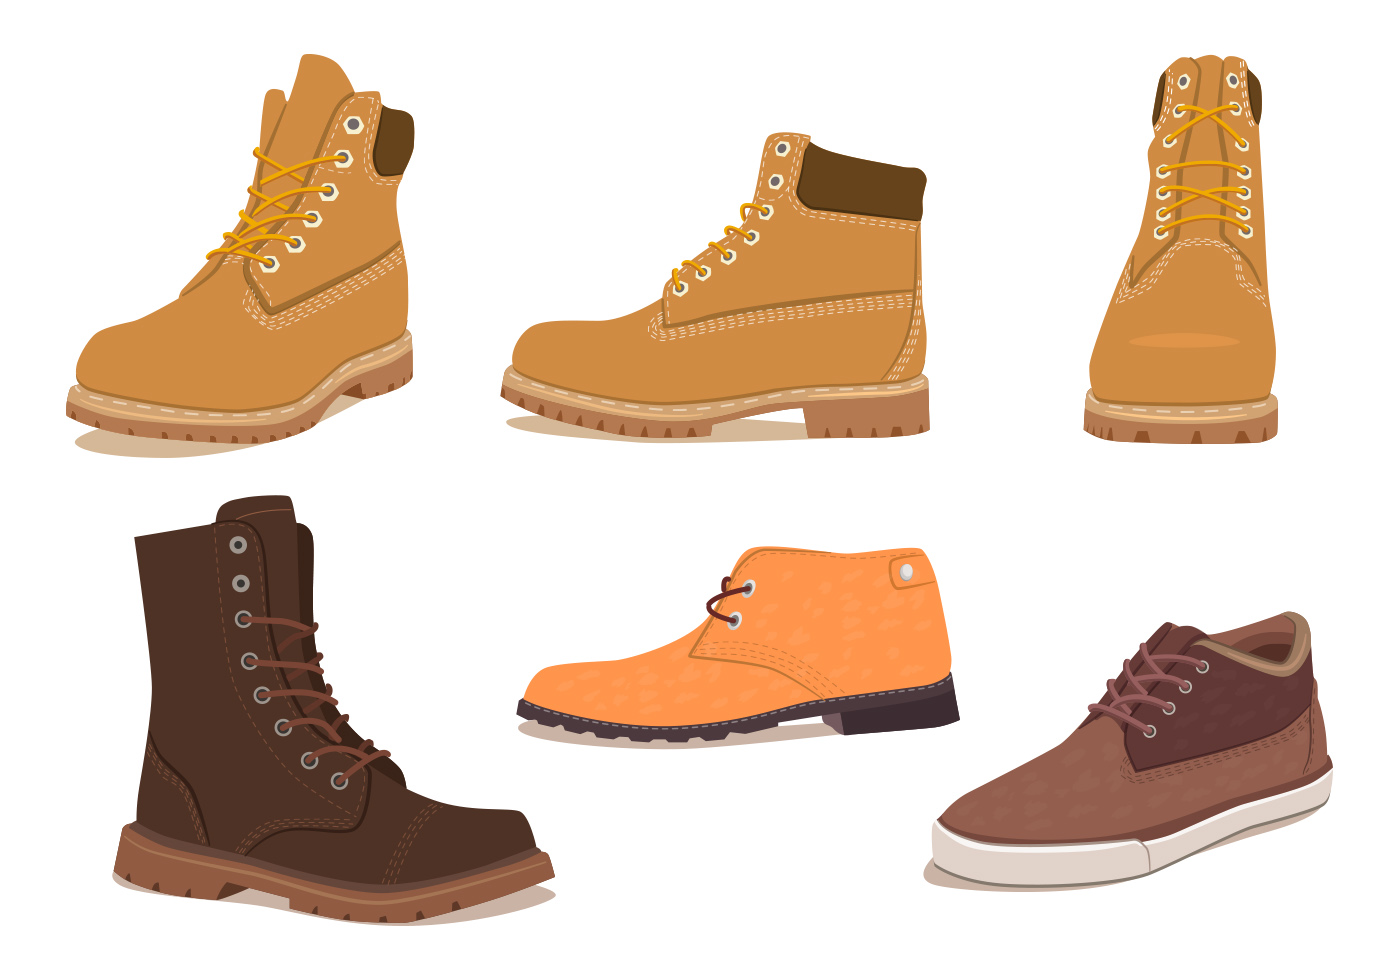 Timberland offers men's boat shoes that can be used for the open waters and for dry land. These shoes have a rubber sole and leather upper. Many of Timberland's boat shoes also come with extra features, such as hand-sewn uppers and cushioned footbeds.